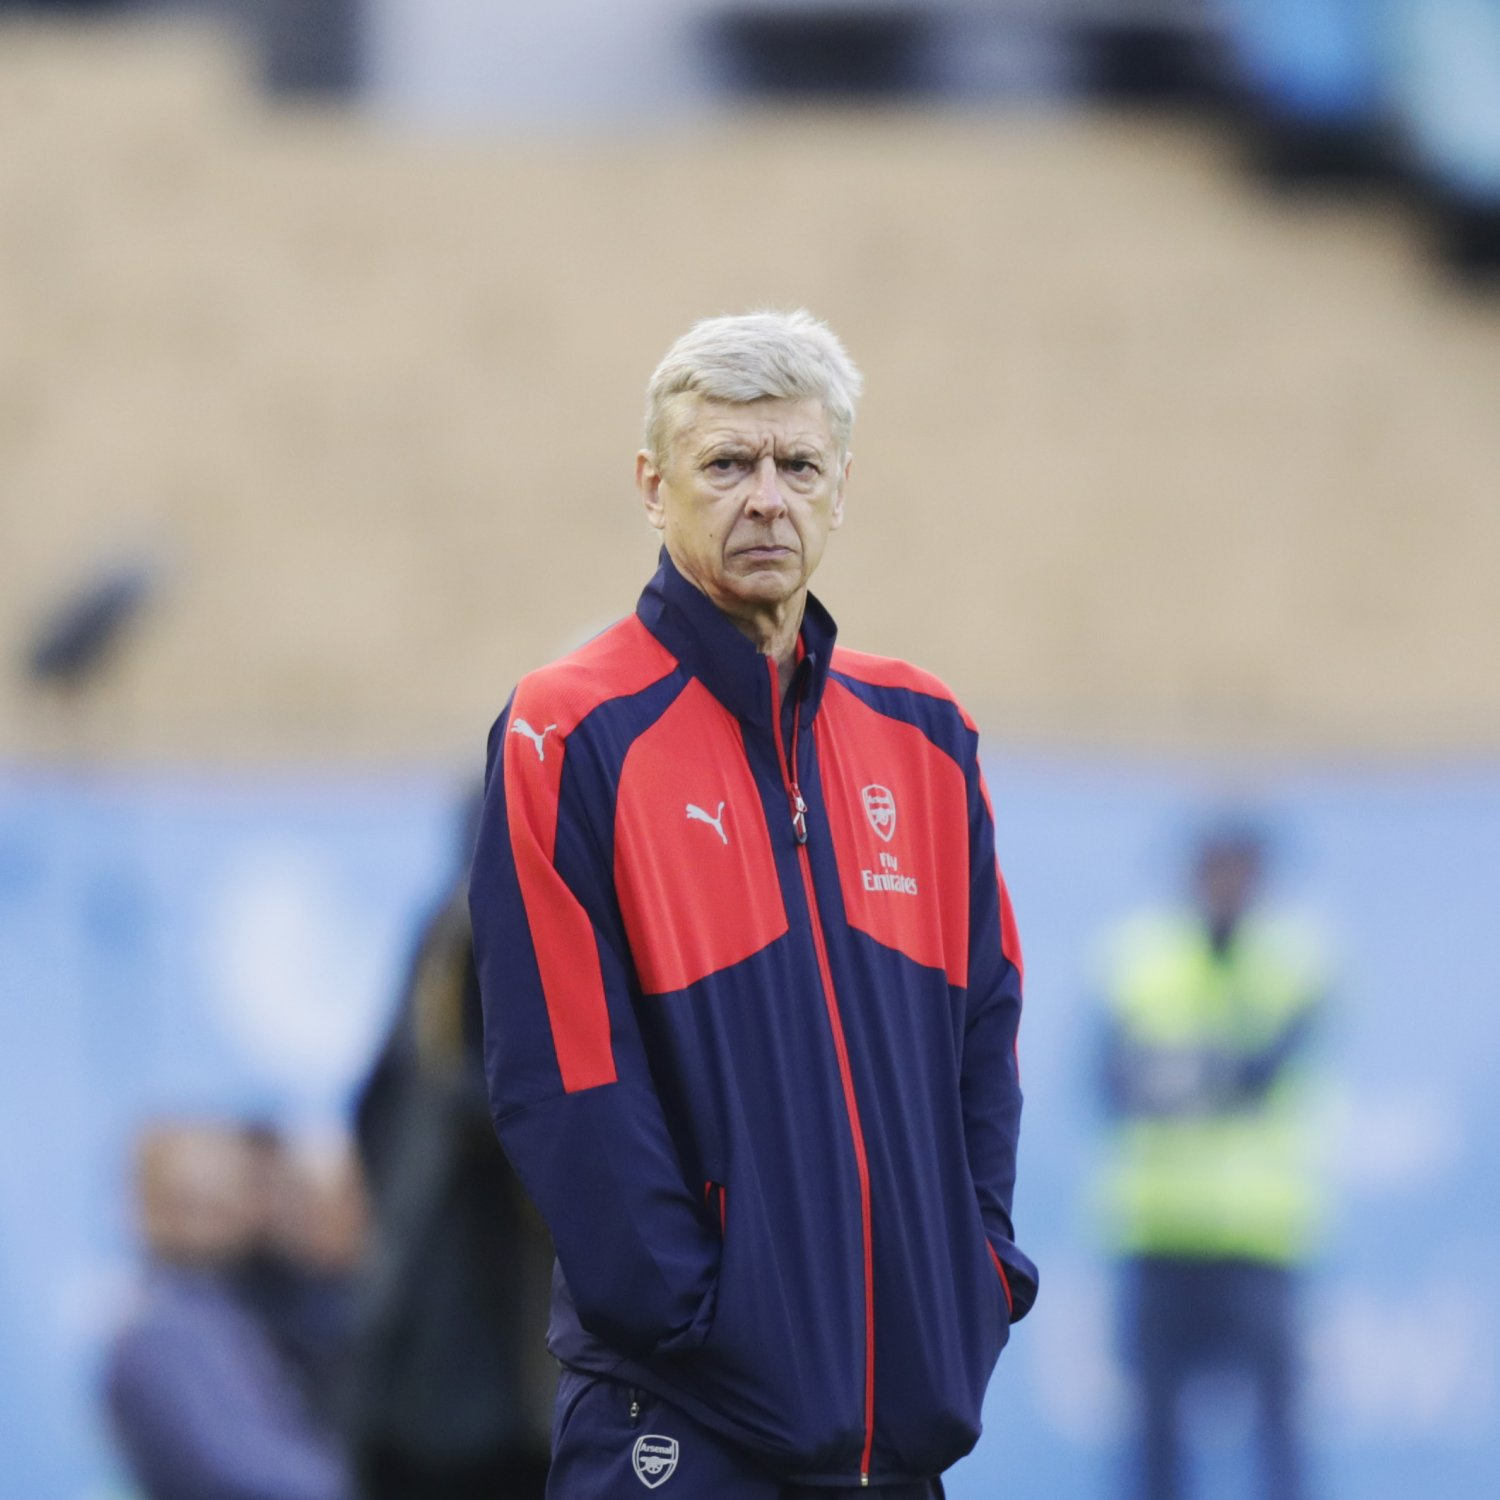 Arsenal vs. Liverpool: Arsene Wenger's Key Pre-Match Press Conference Quotes | Bleacher Report